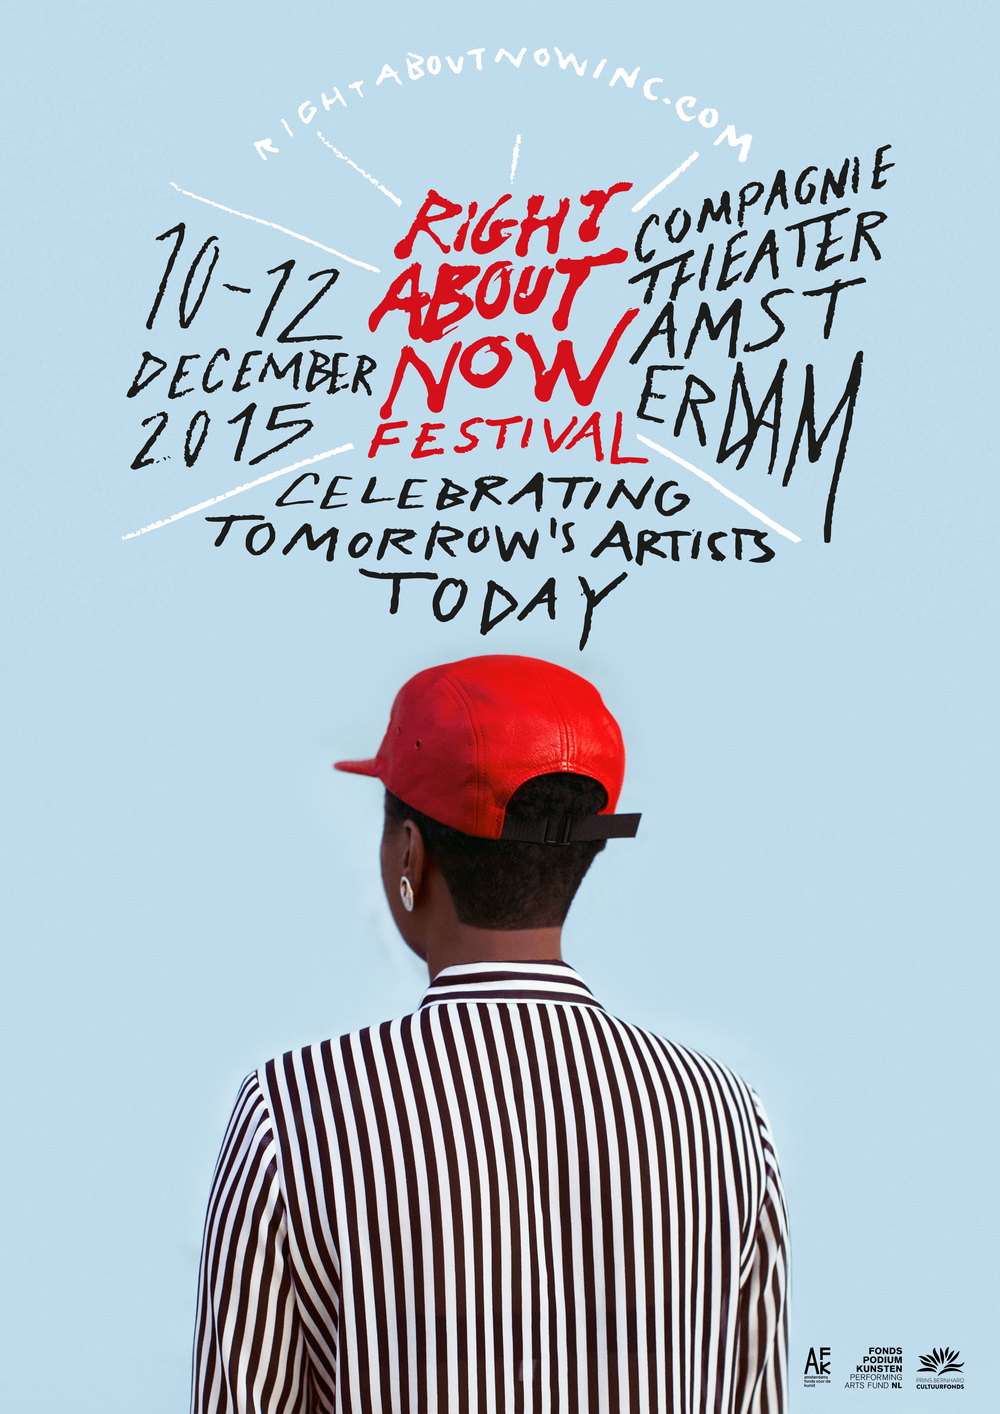 Poster+Rightaboutnow+Festival+2015.jpeg